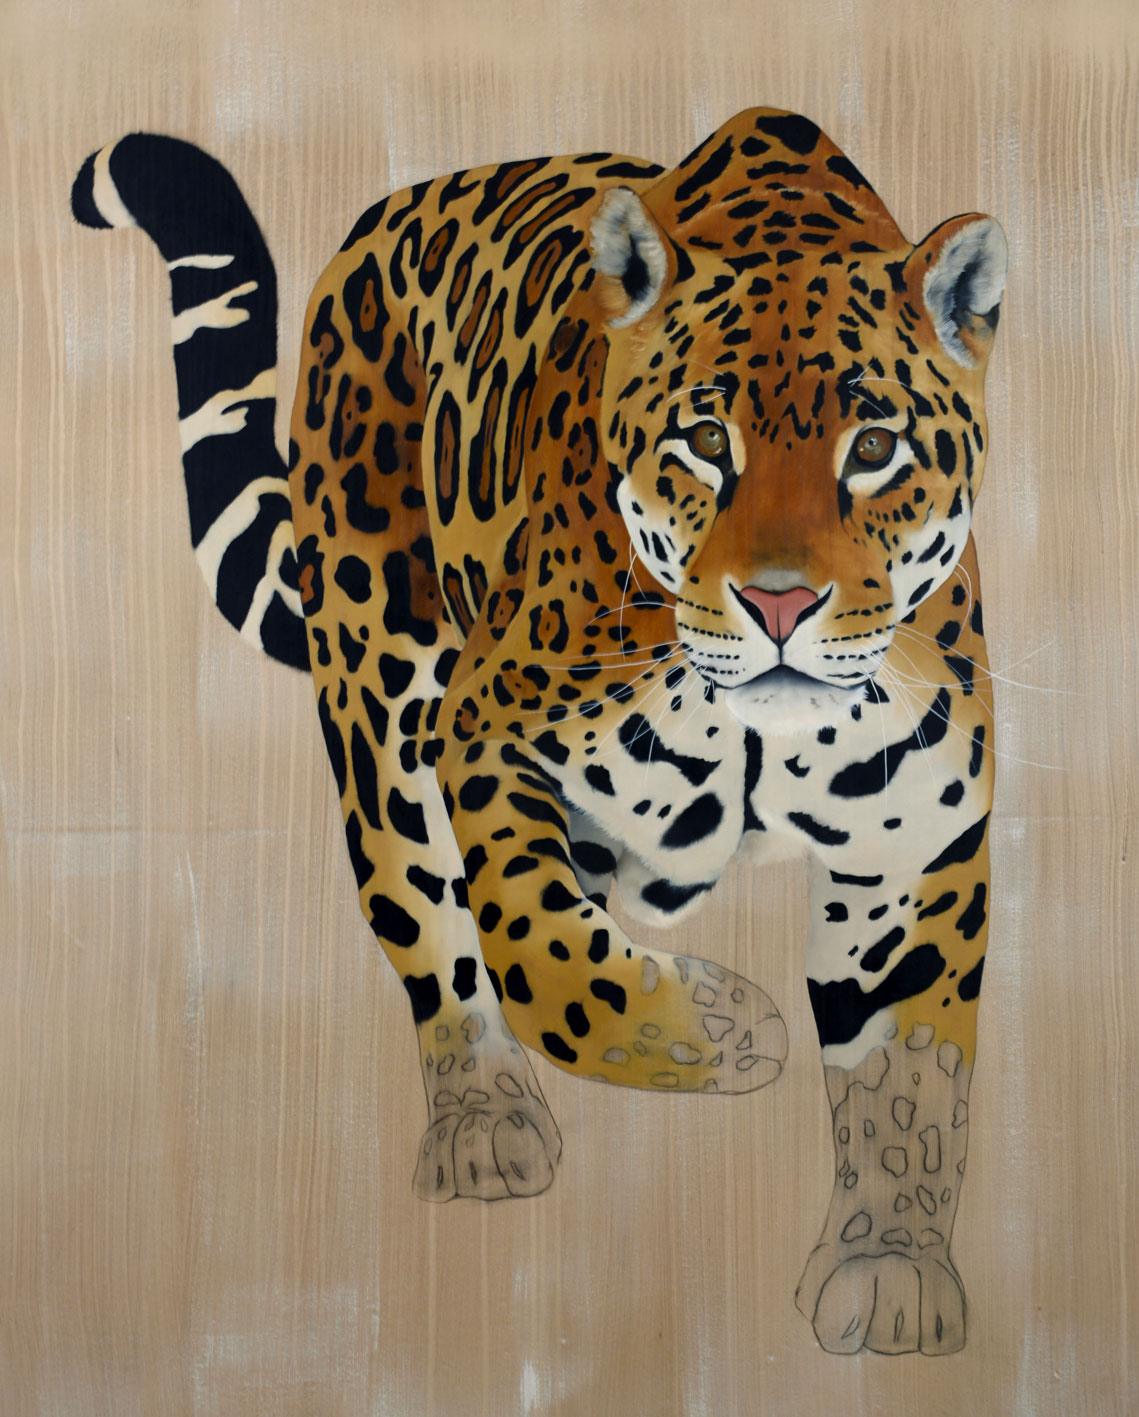 Pantera-Onca panthera-onca-jaguar-delete-threatened-endangered-extinction- Thierry Bisch Contemporary painter animals painting art  nature biodiversity conservation